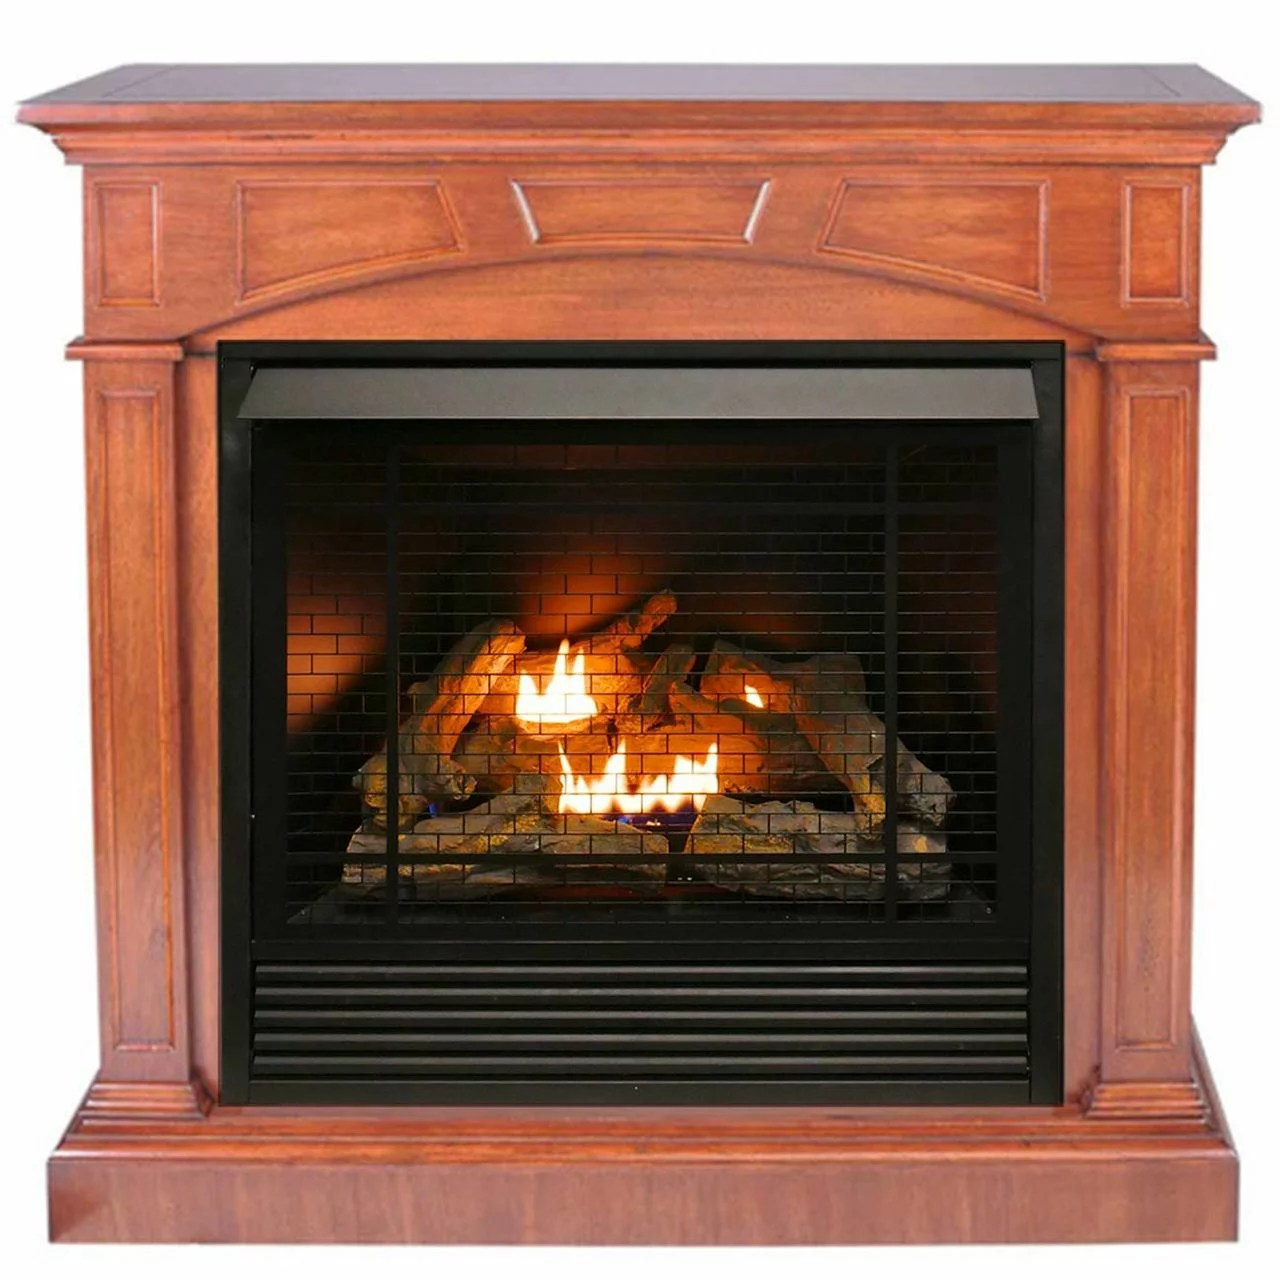 Btu Gas Fireplace Duluth Forge Fdi32r M Hc Dual Fuel Ventless Gas Fireplace 32 000 Btu Remote Control Heritage Cherry Finish